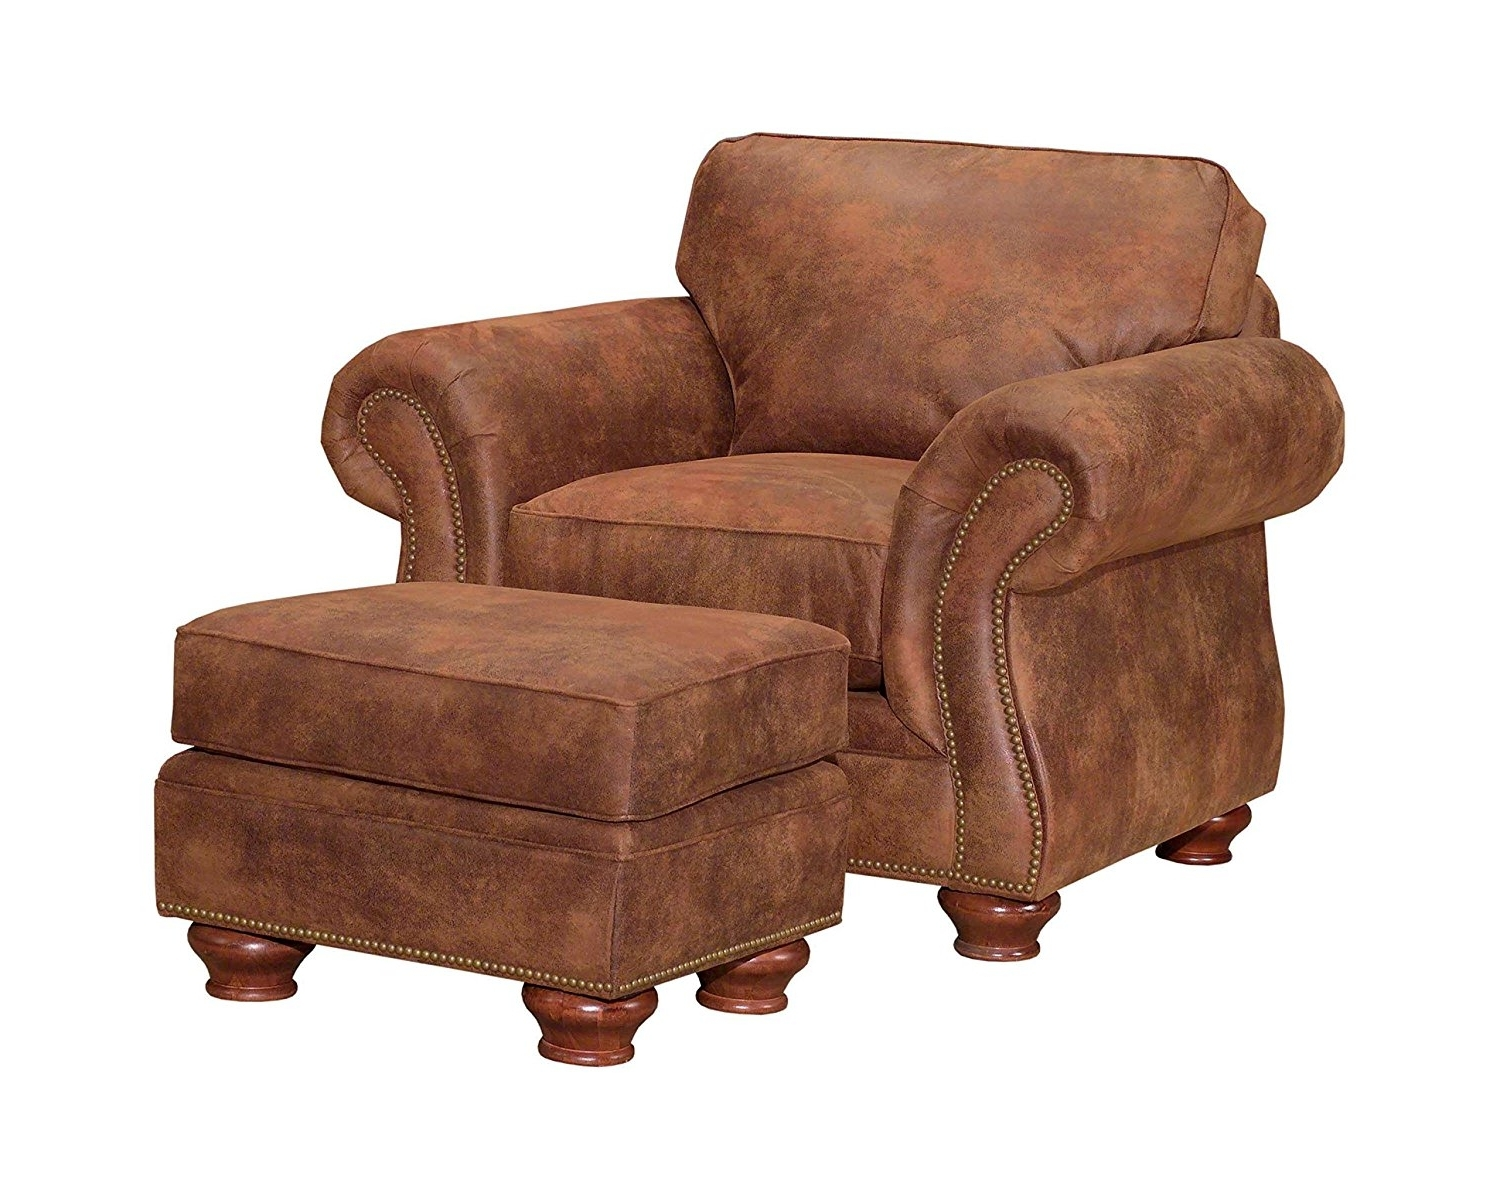 Amazon: Broyhill Laramie Chair, Chocolate: Kitchen & Dining Inside Well Known Chairs With Ottoman (View 5 of 15)